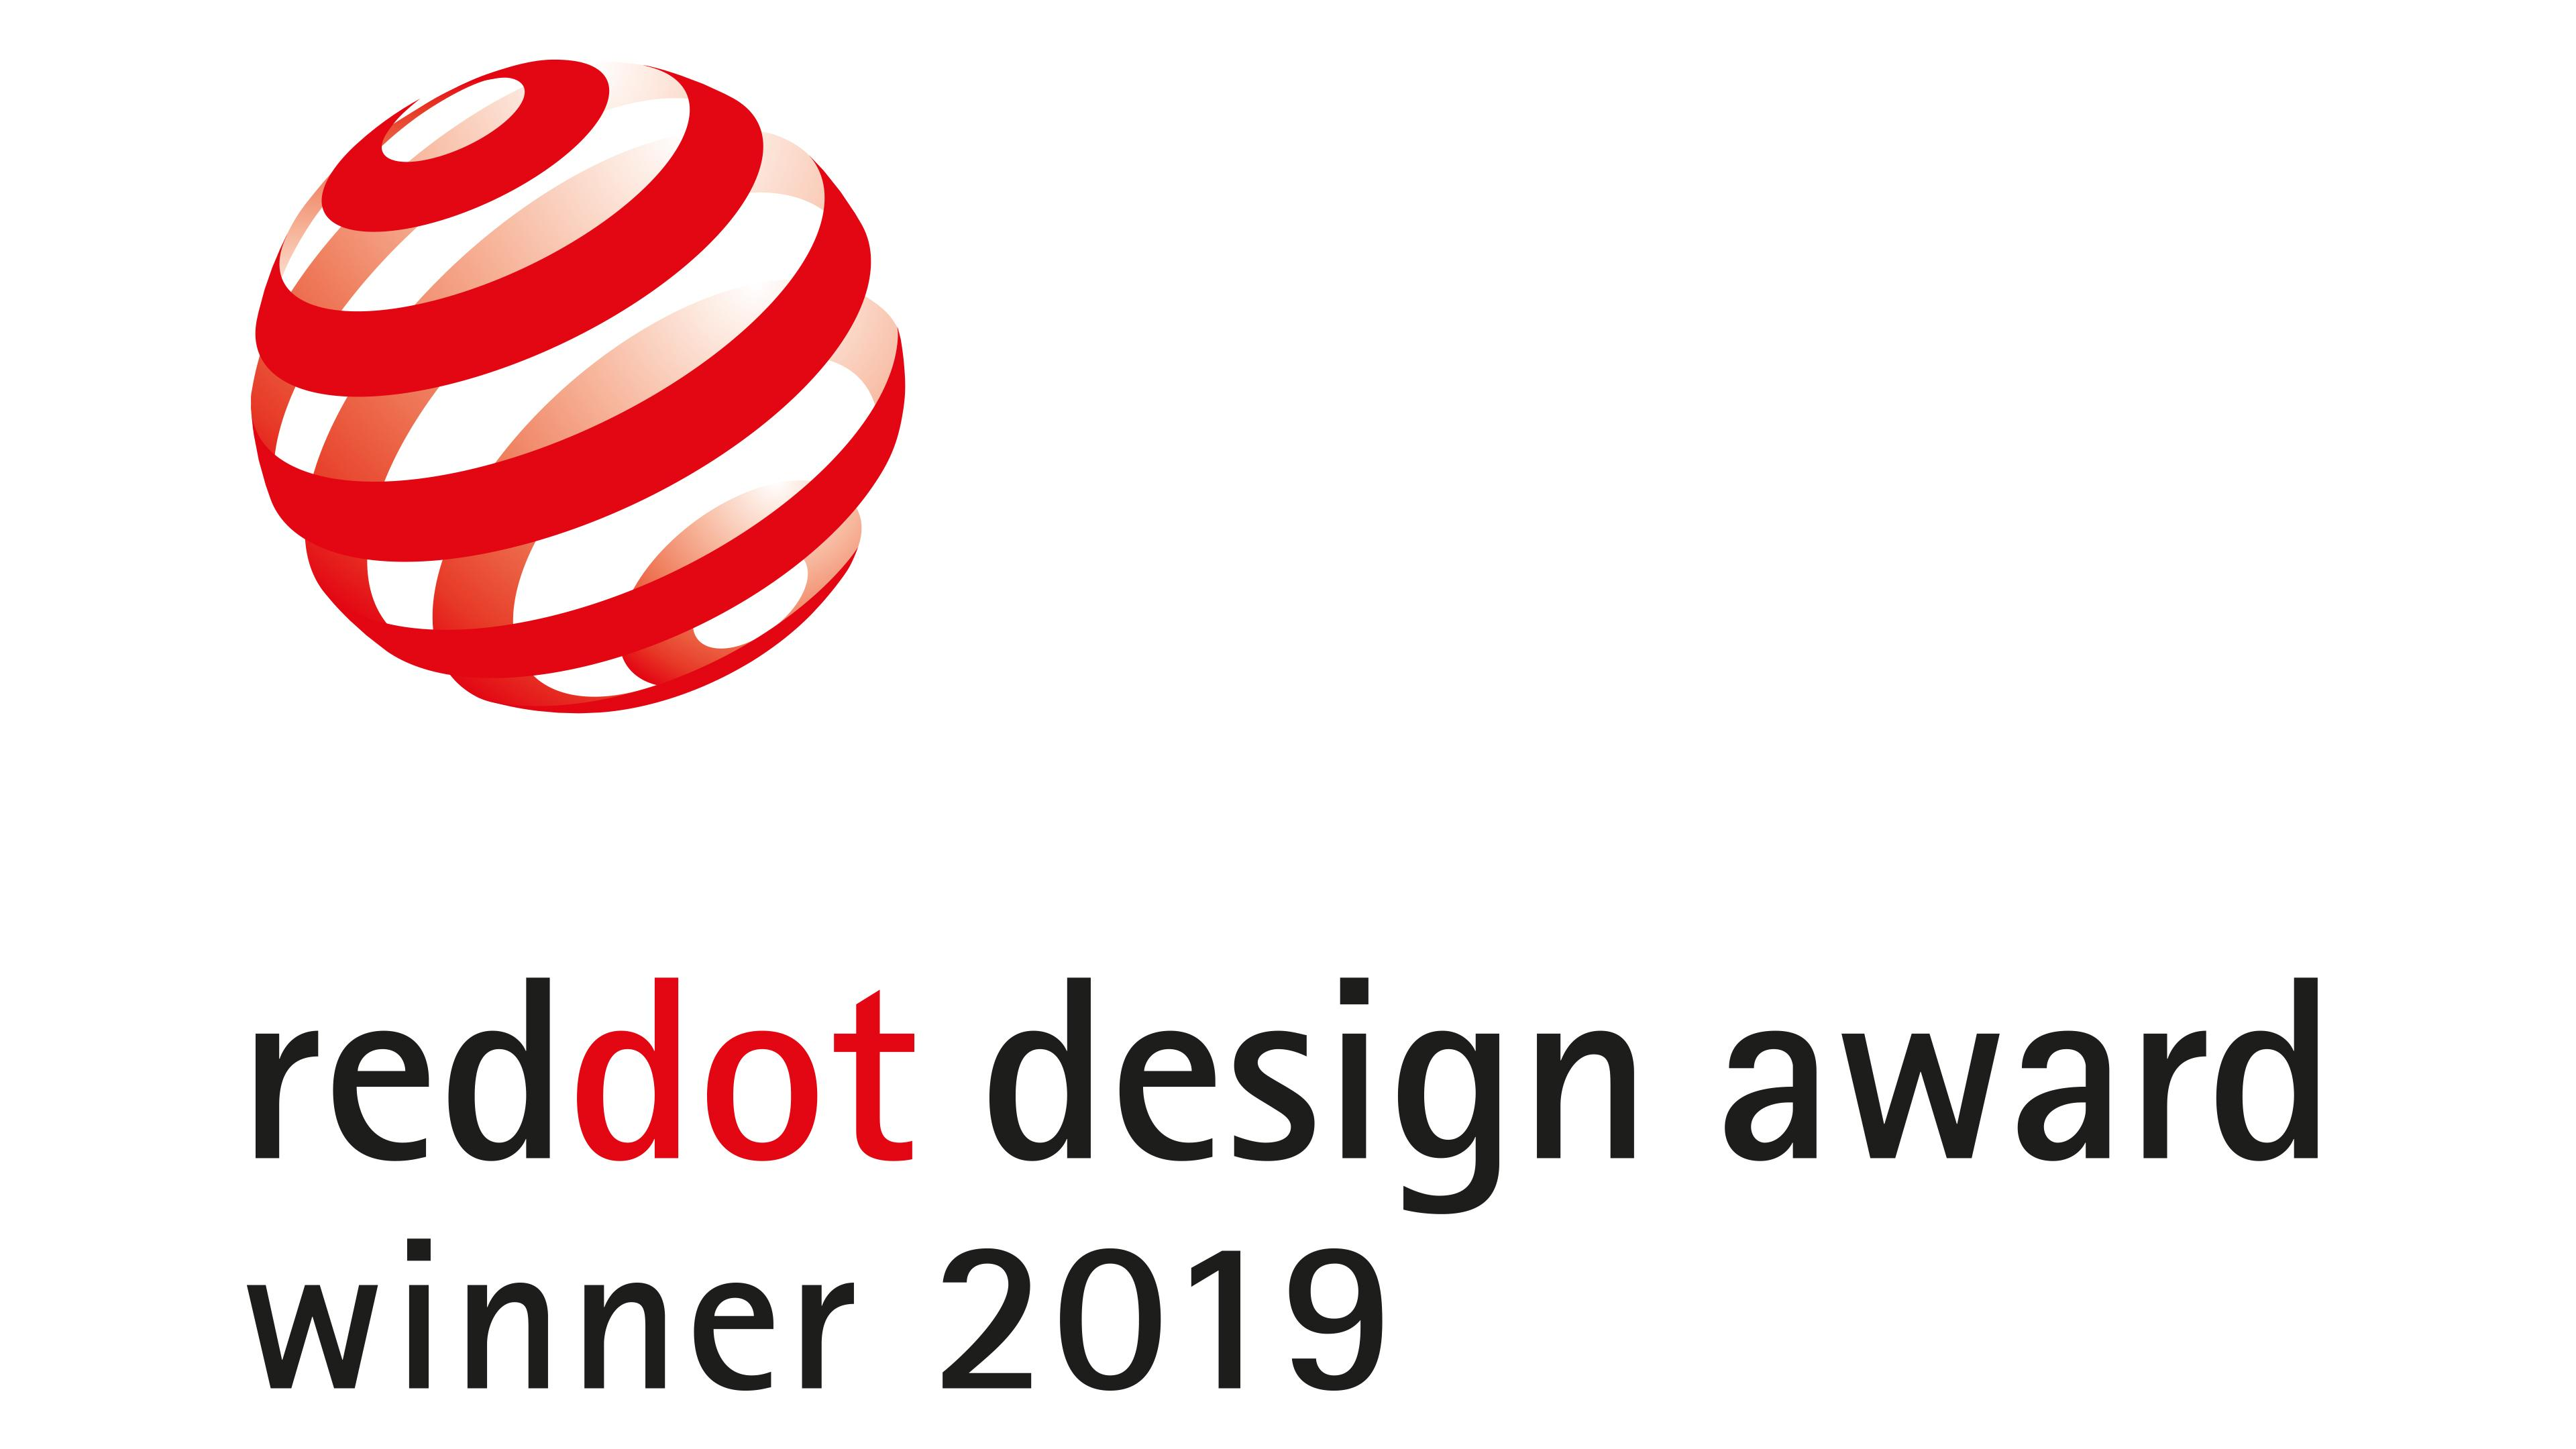 Award_PD2019_RD-design.jpg